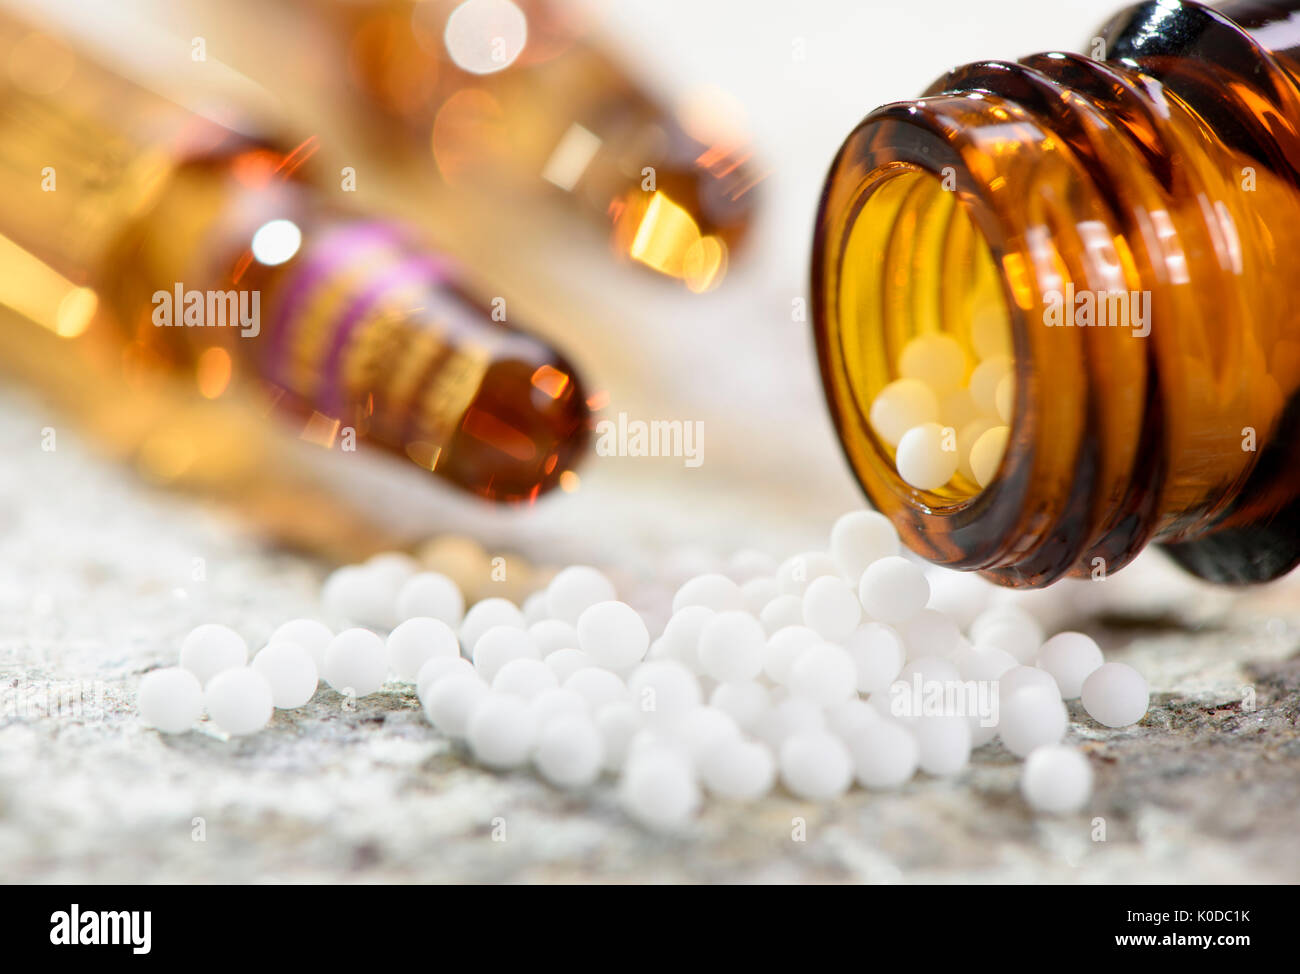 alternative medicine with herbal and homeopathic pills - Stock Image